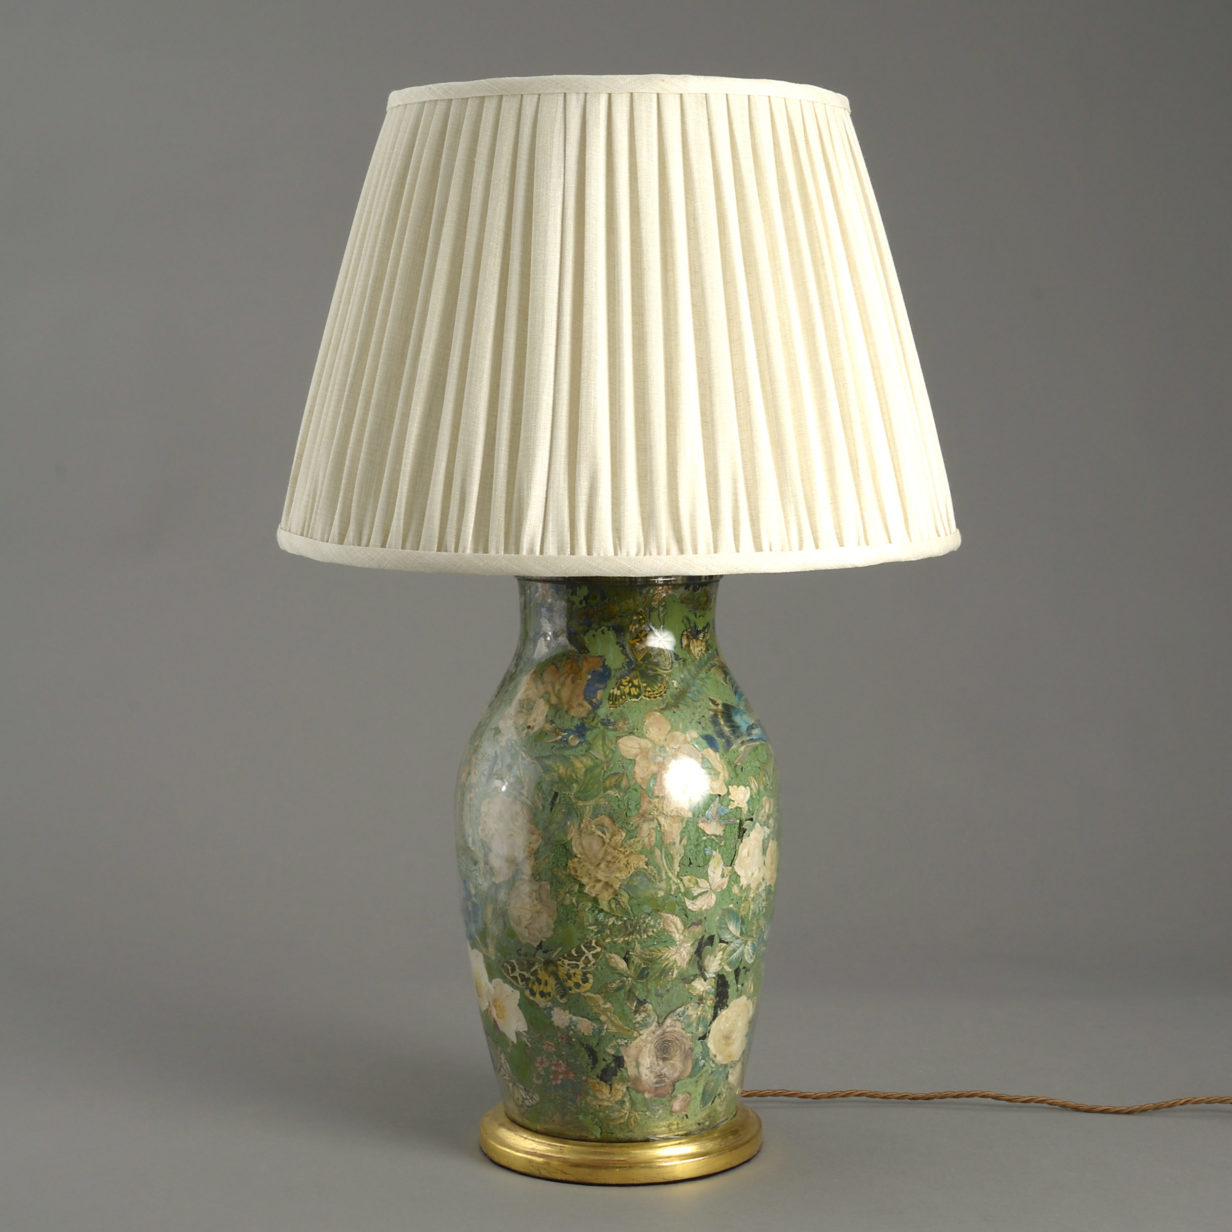 A Decalcomania Vase Lamp